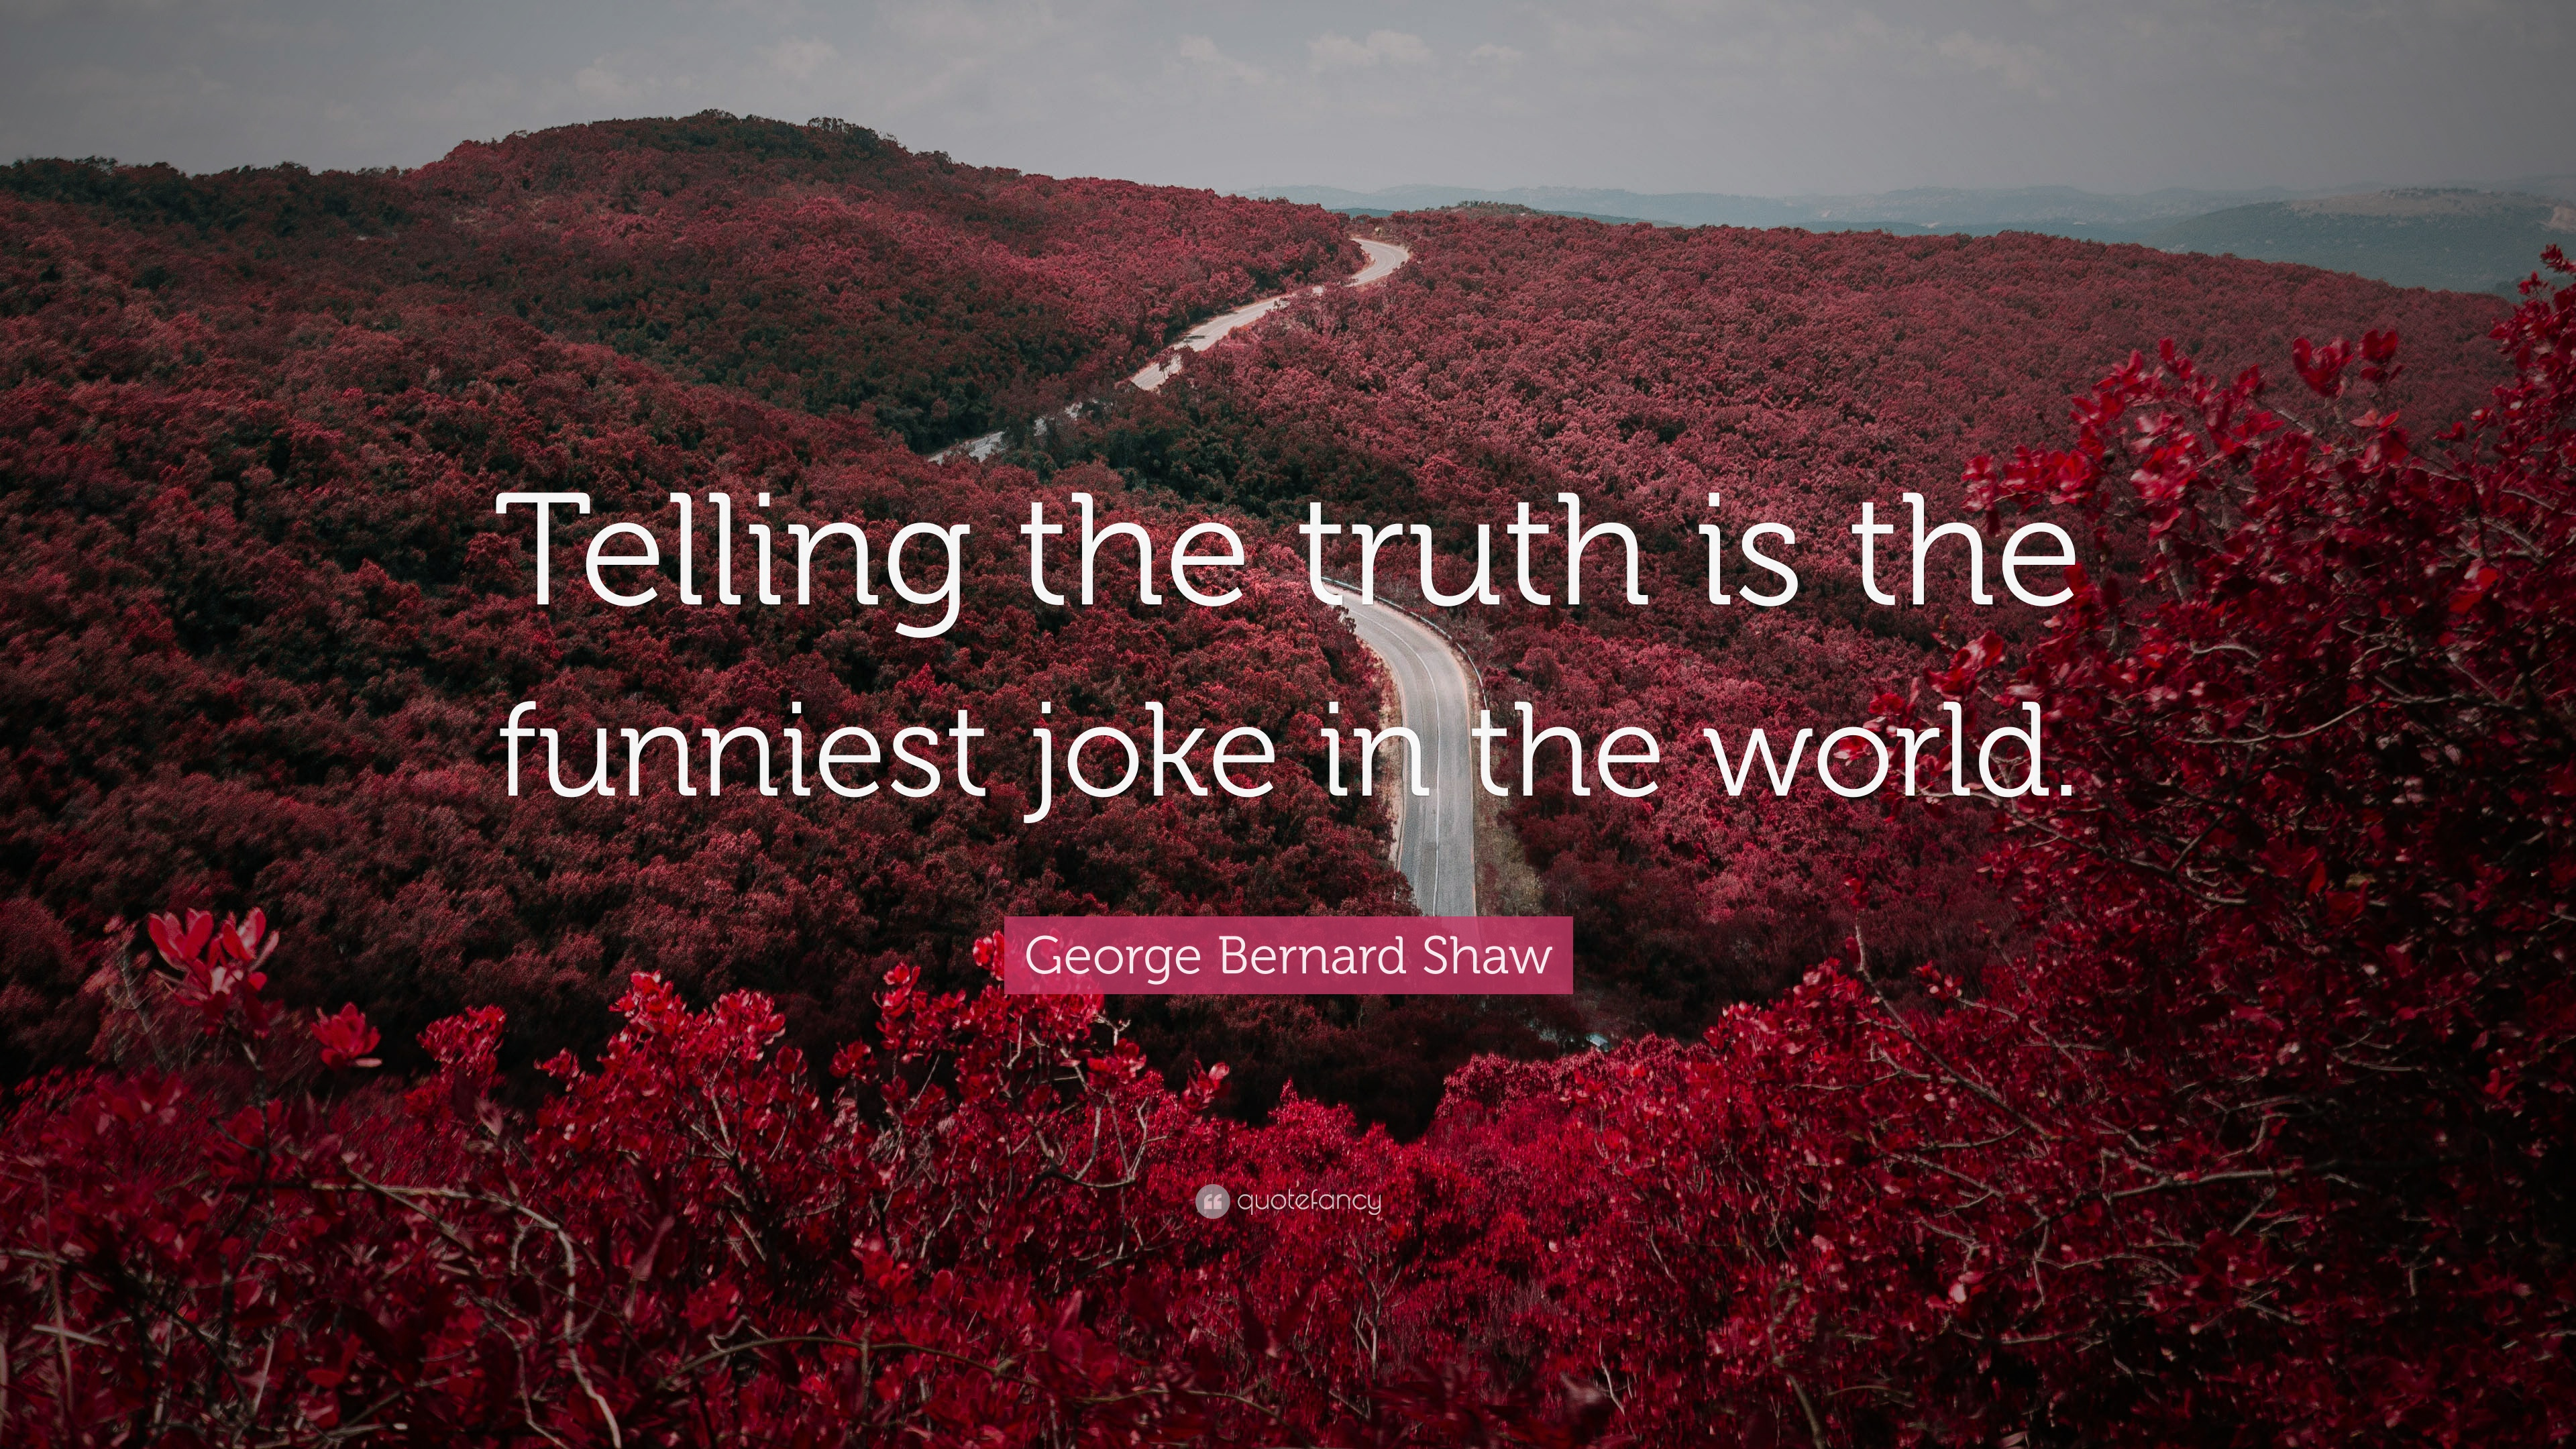 George Bernard Shaw Quote: U201cTelling The Truth Is The Funniest Joke In The  World